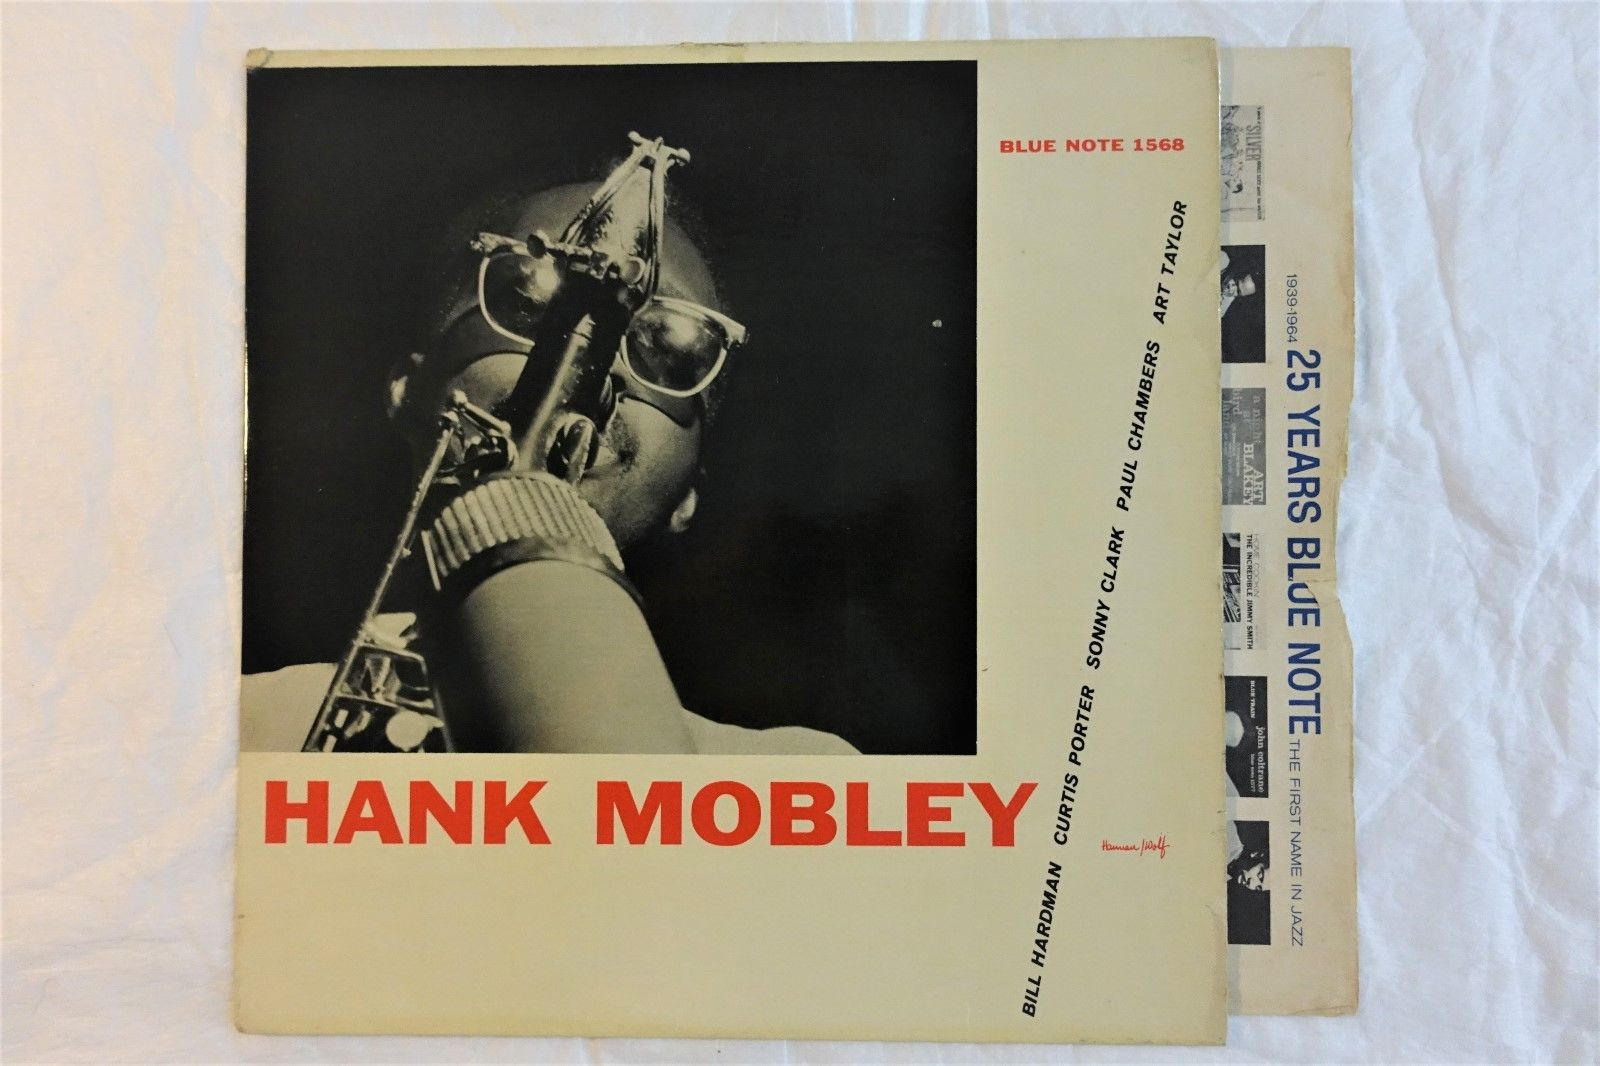 HANK MOBLEY'S SELF TITLE ' HANK MOBLEY' BLUENOTE BLP 1568. ED1.FACTORY SAMPLE